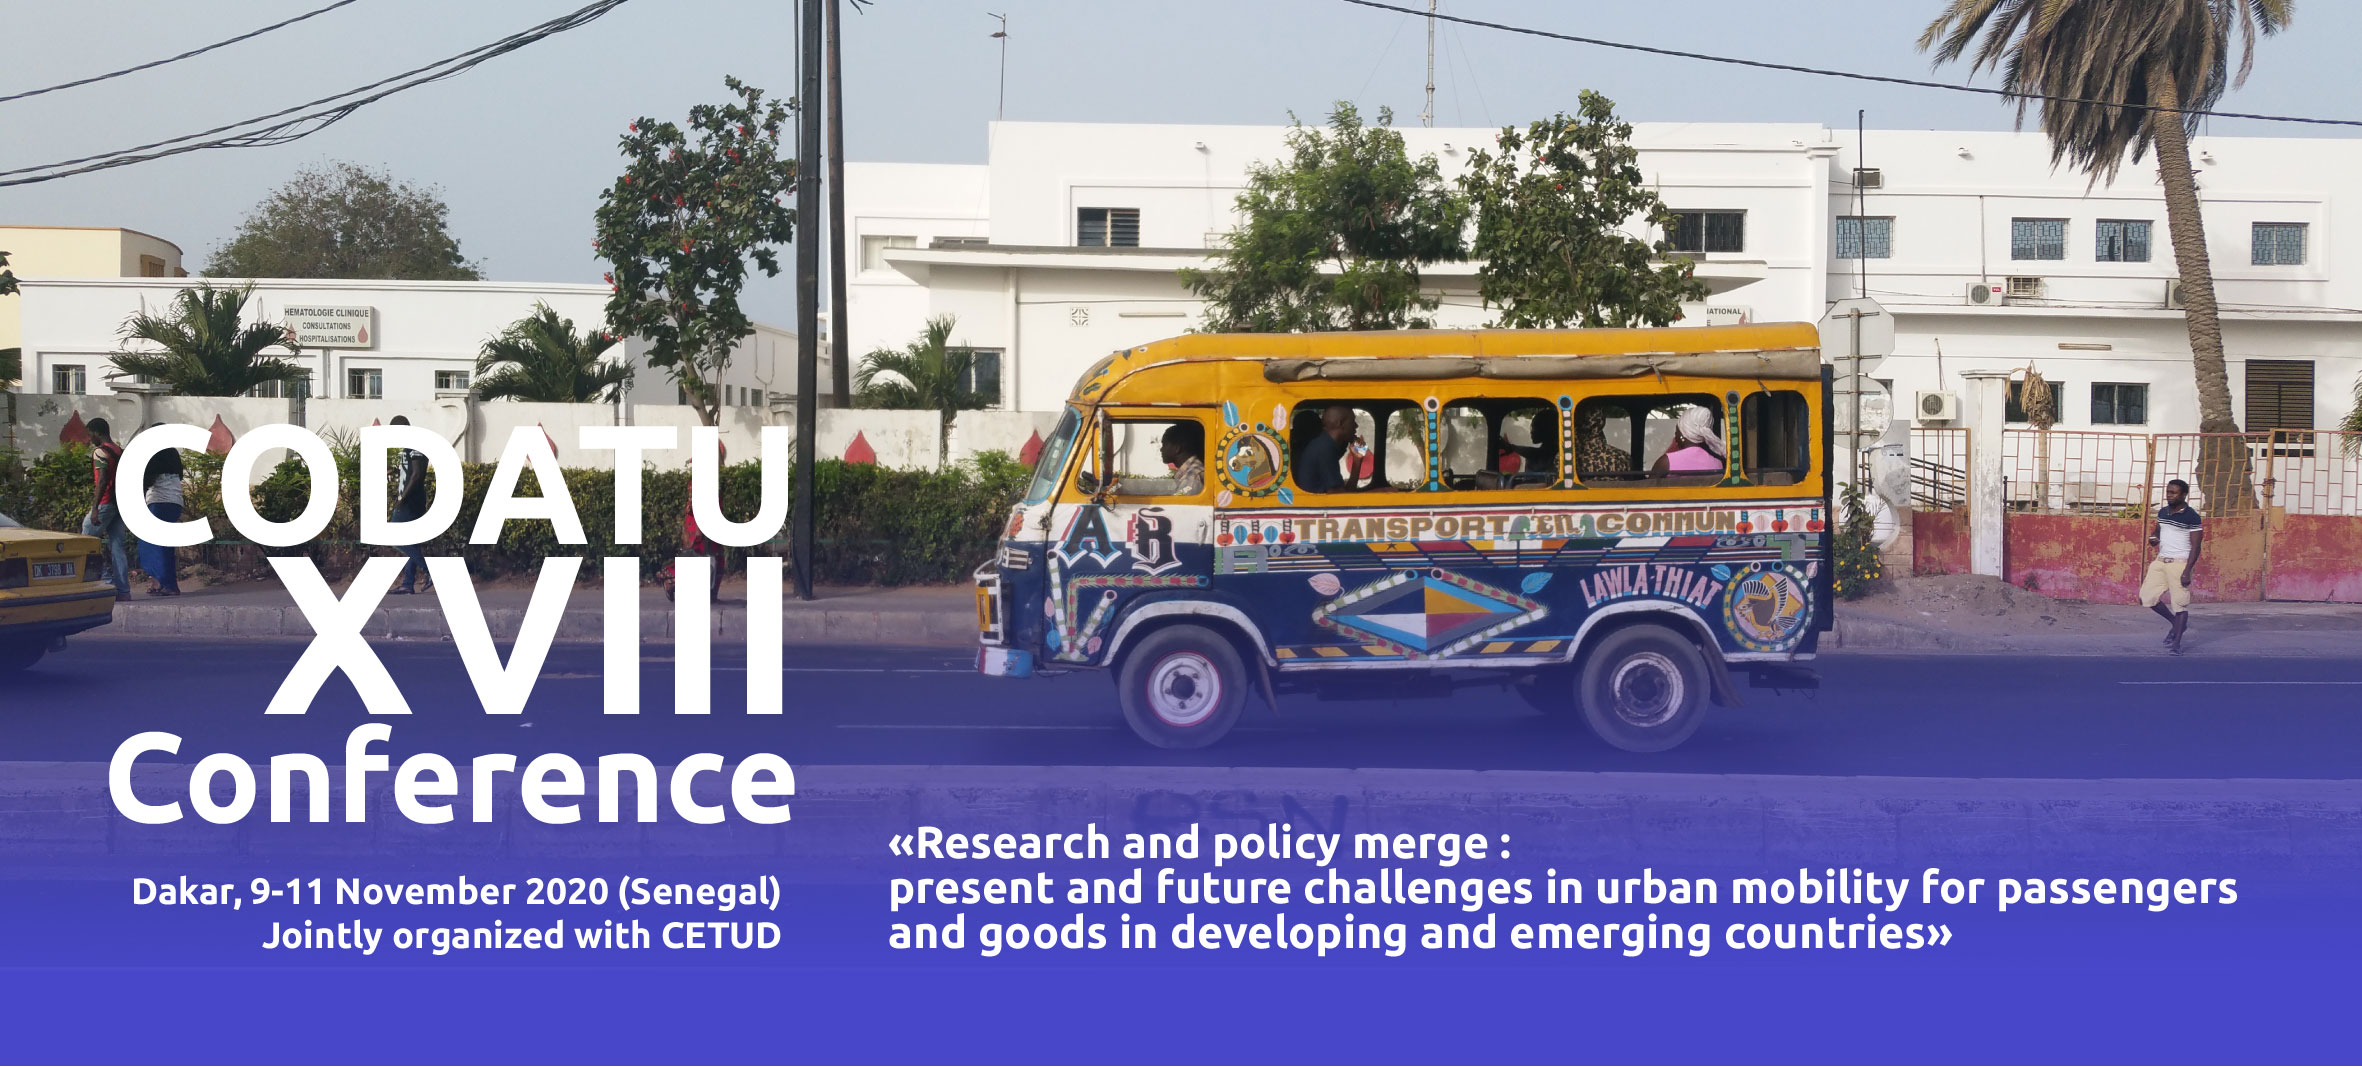 #Postponed# News about the CODATU 2020 Conference in Dakar